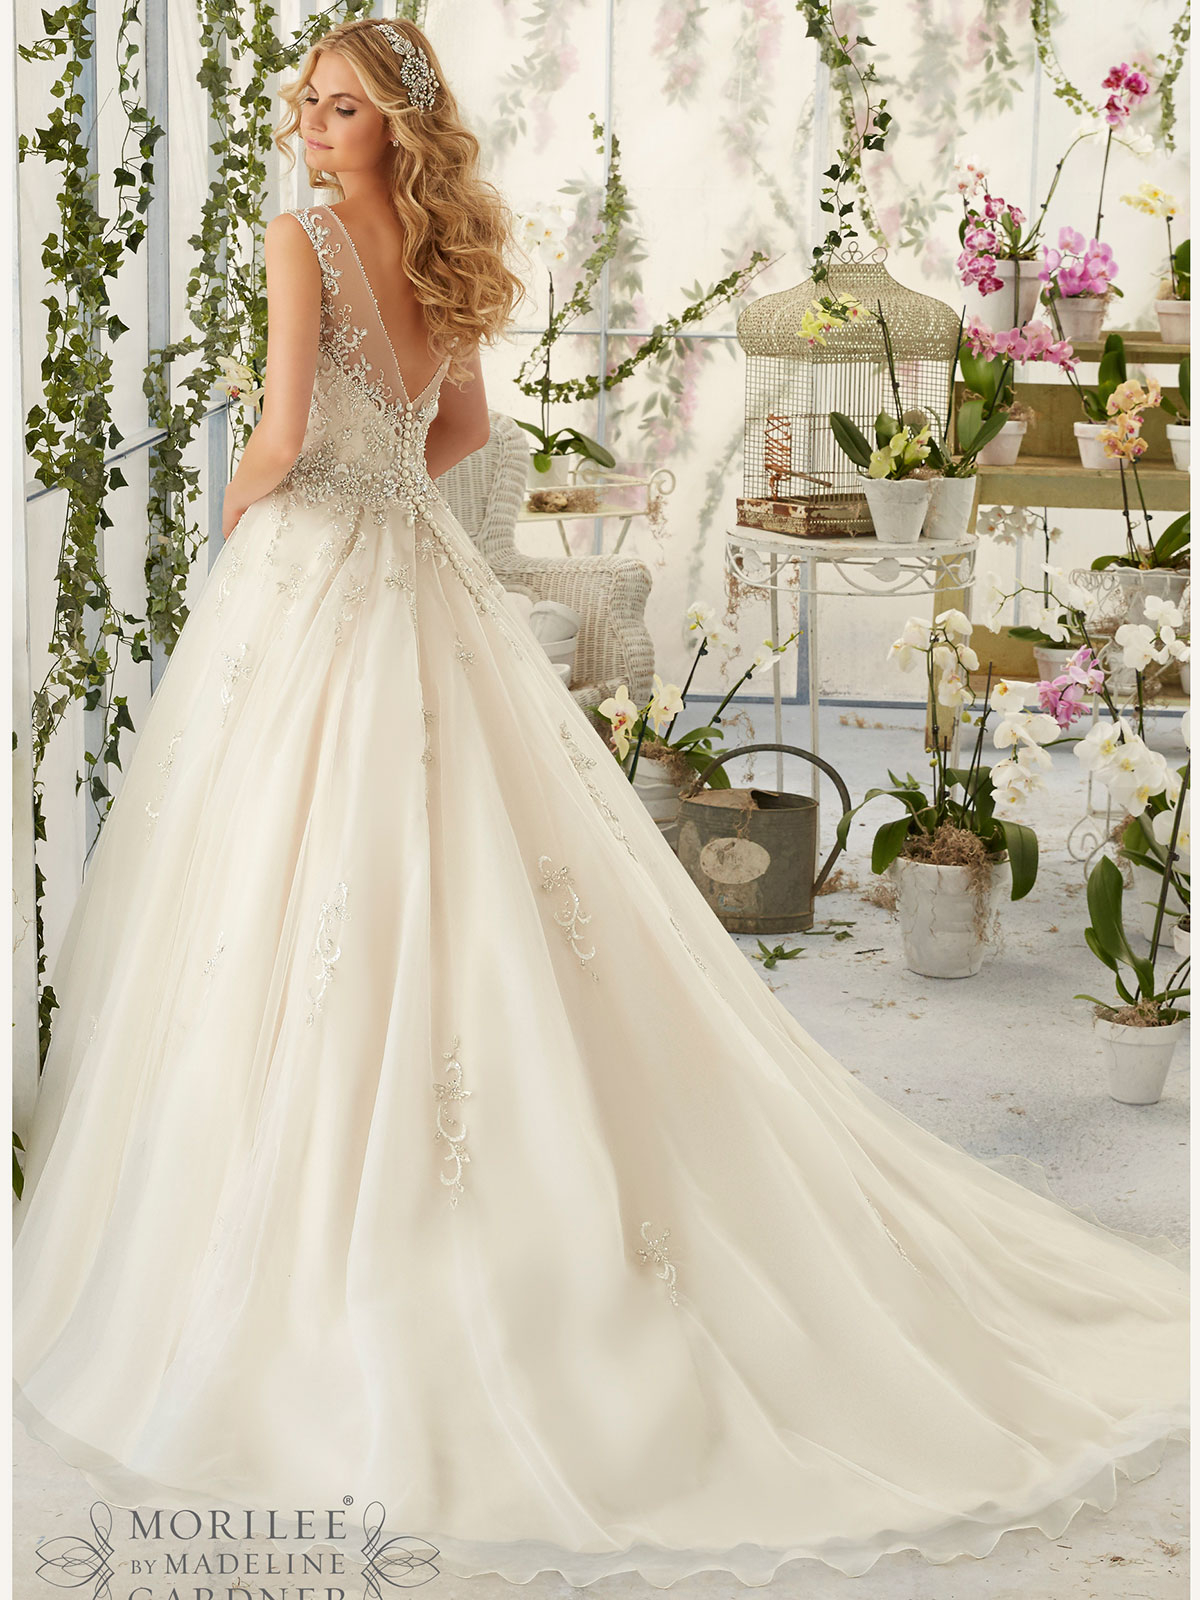 Mori Lee 2818 Tulle Ball Gown Bridal Dress Dimitradesigns